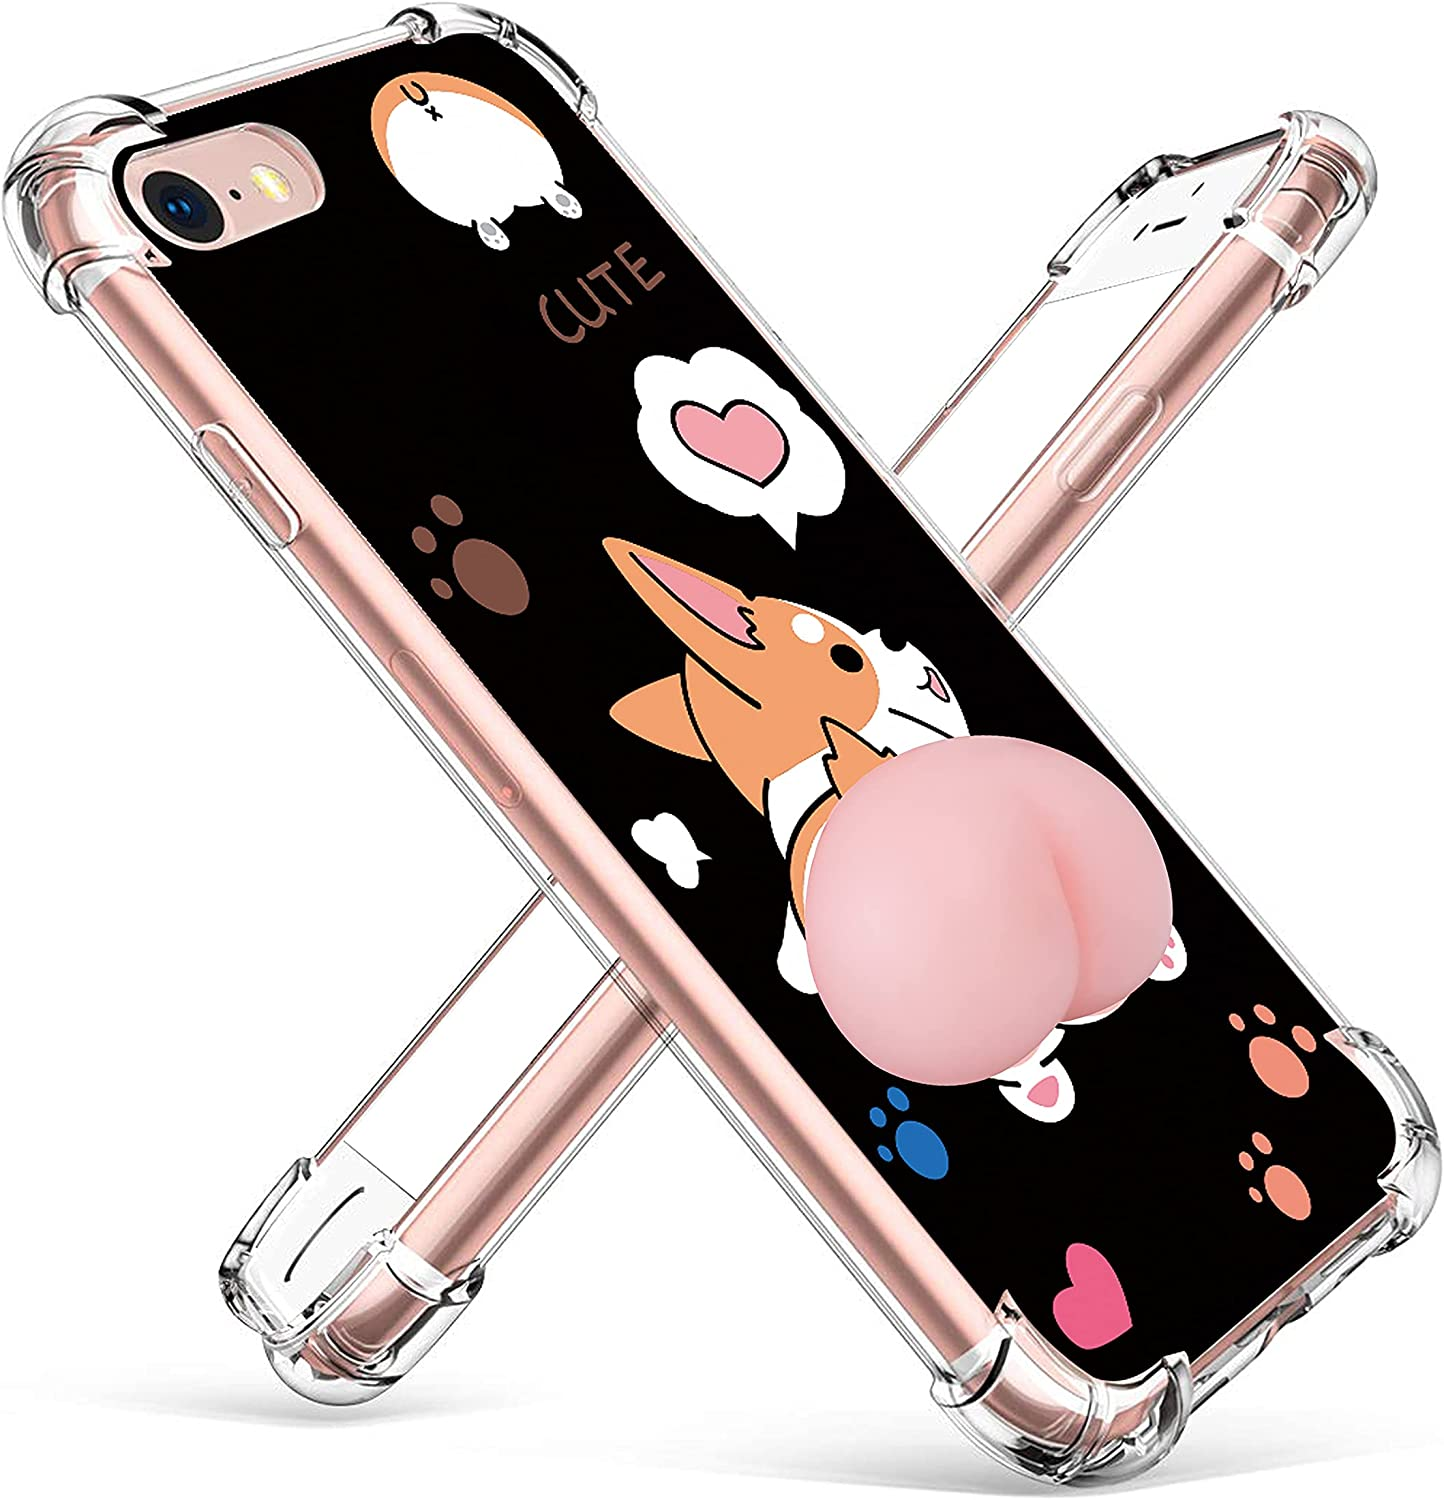 oqpa for iPhone 6 Plus/6S Plus Case Cartoon Character Funny Cute Fun TPU Design Cover for Girls Kids Boys Teen Fashion Cool Unique Aesthetic Animal Corgi Butt Dog Cases(for iPhone 6 Plus/6S Plus 5.5